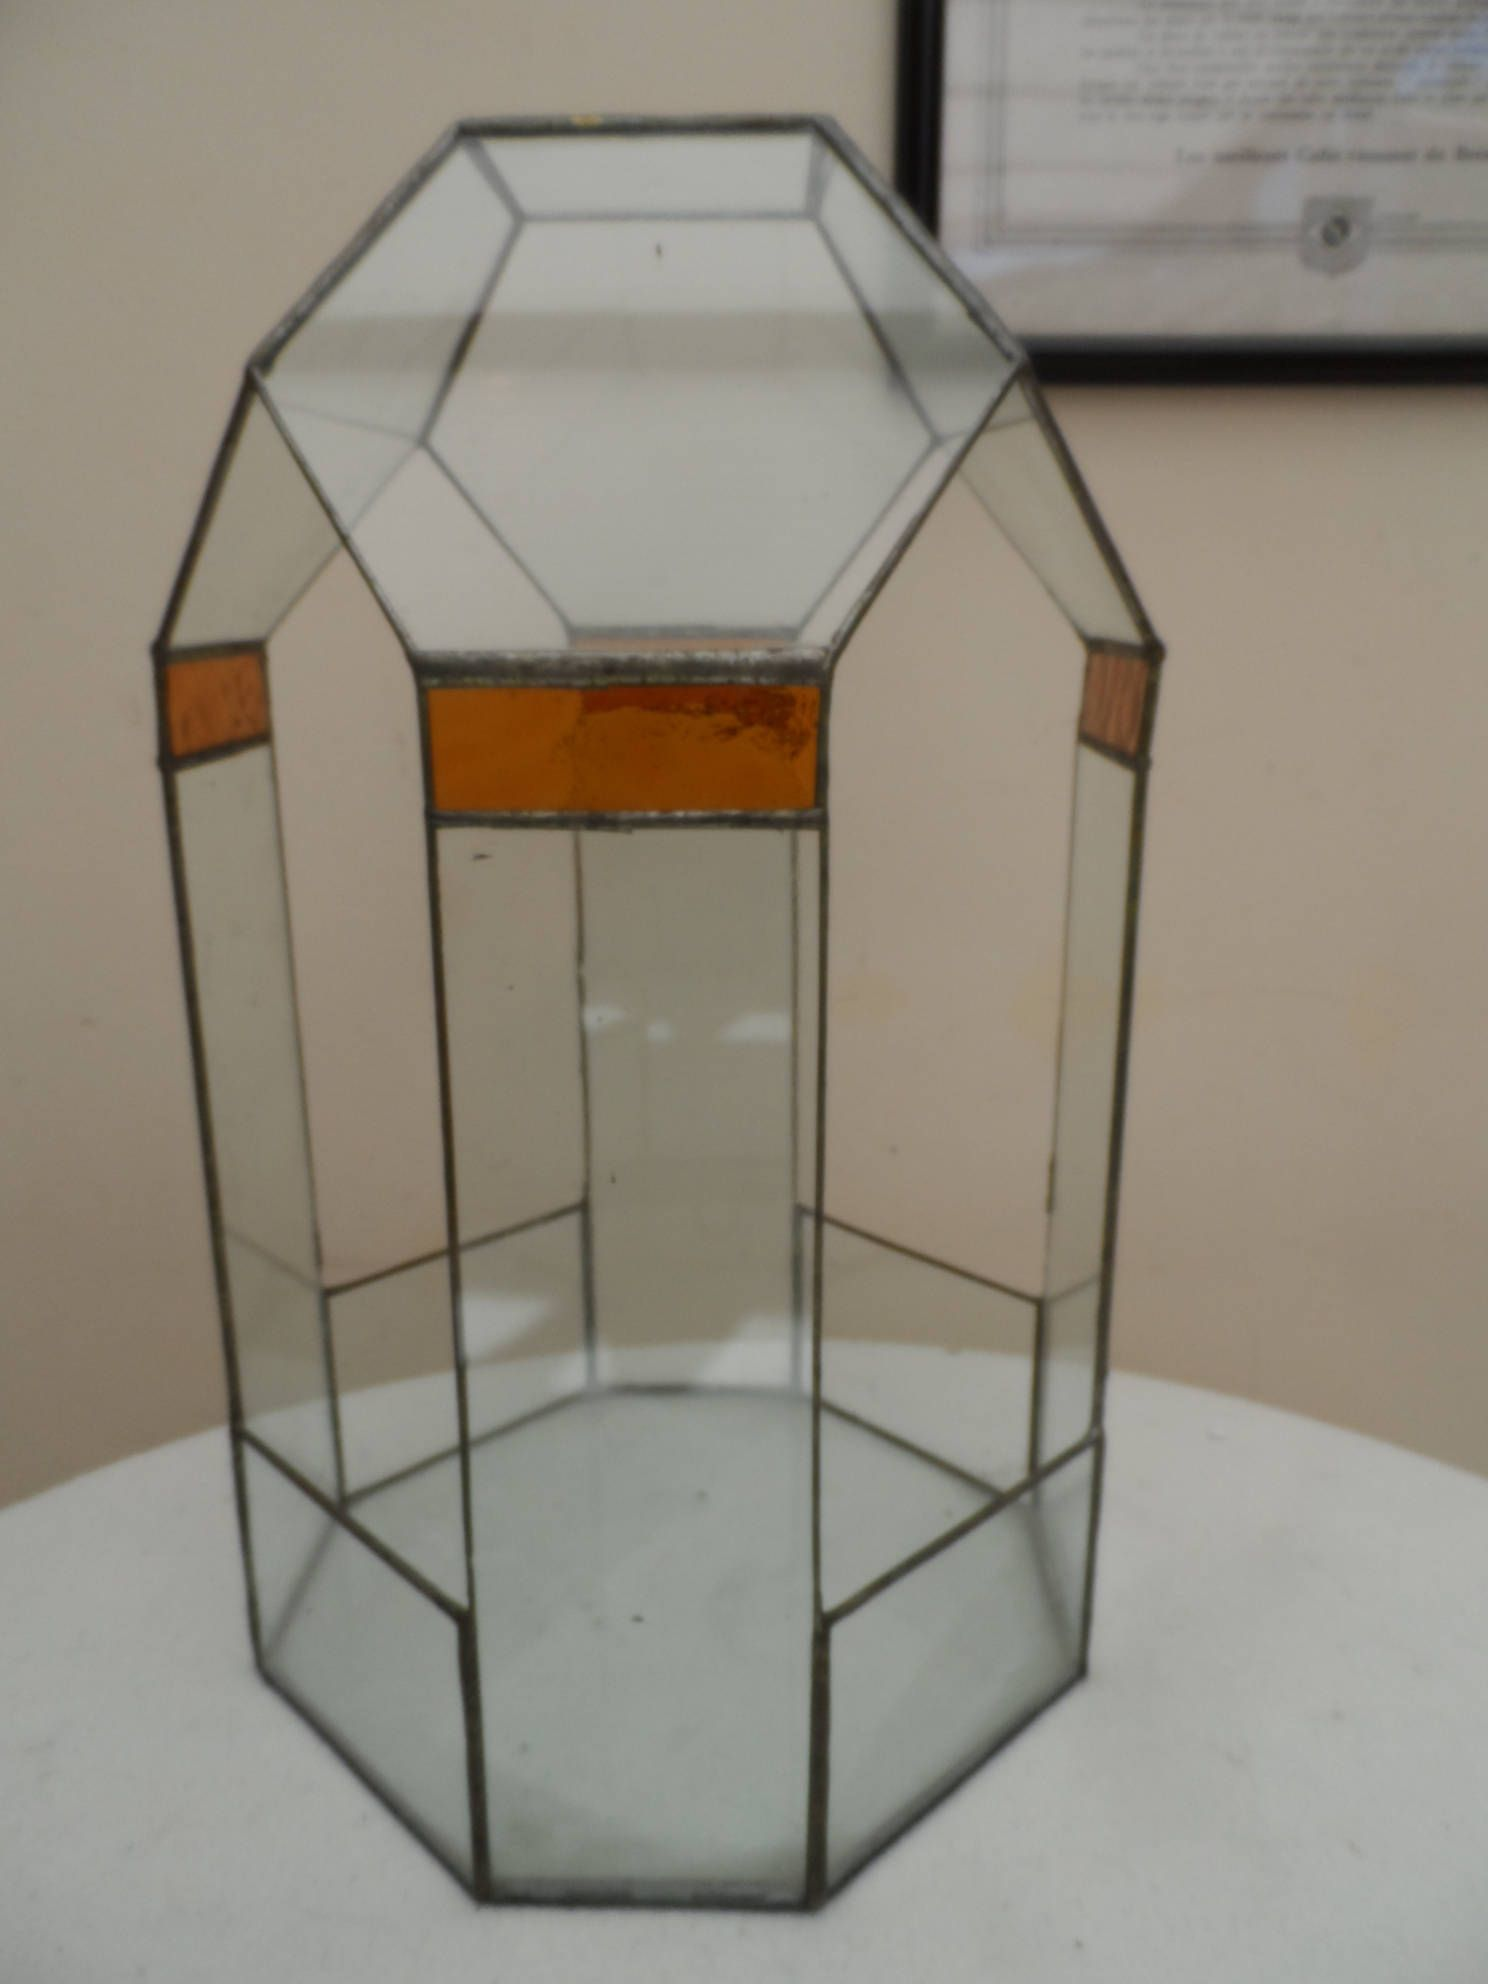 Coloured glass table tops - Large Lead Copper Terrarium Bottle Garden Hexagon Shaped Clear And Coloured Glass Table Top Display Circa 1970